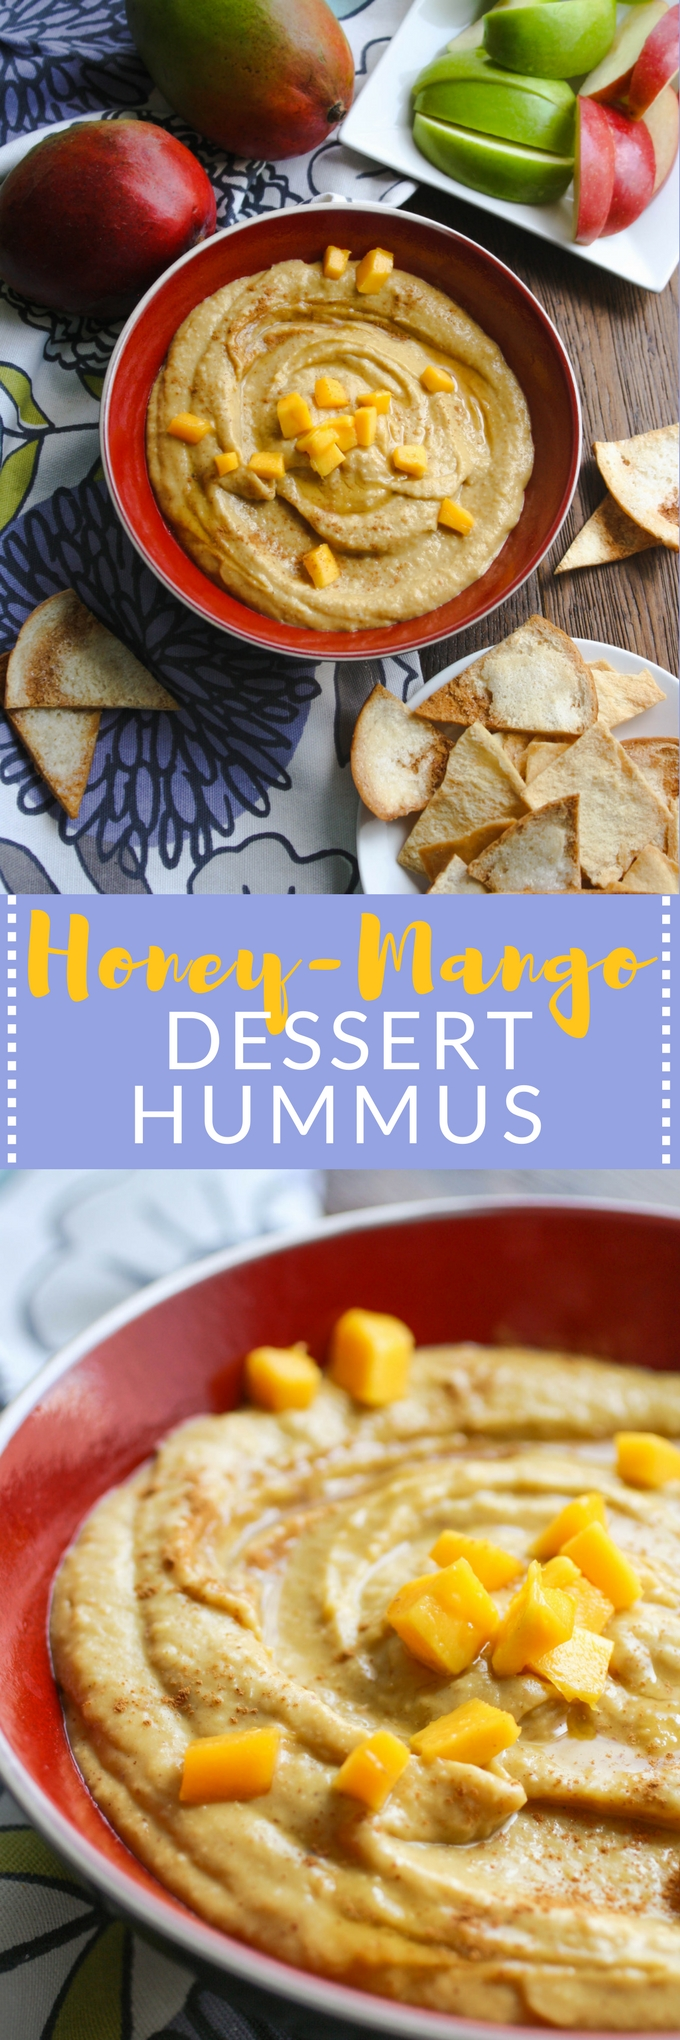 Honey-Mango Dessert Hummus makes a fabulous, sweet snack or dessert. You'll love this twist on a classic dip!